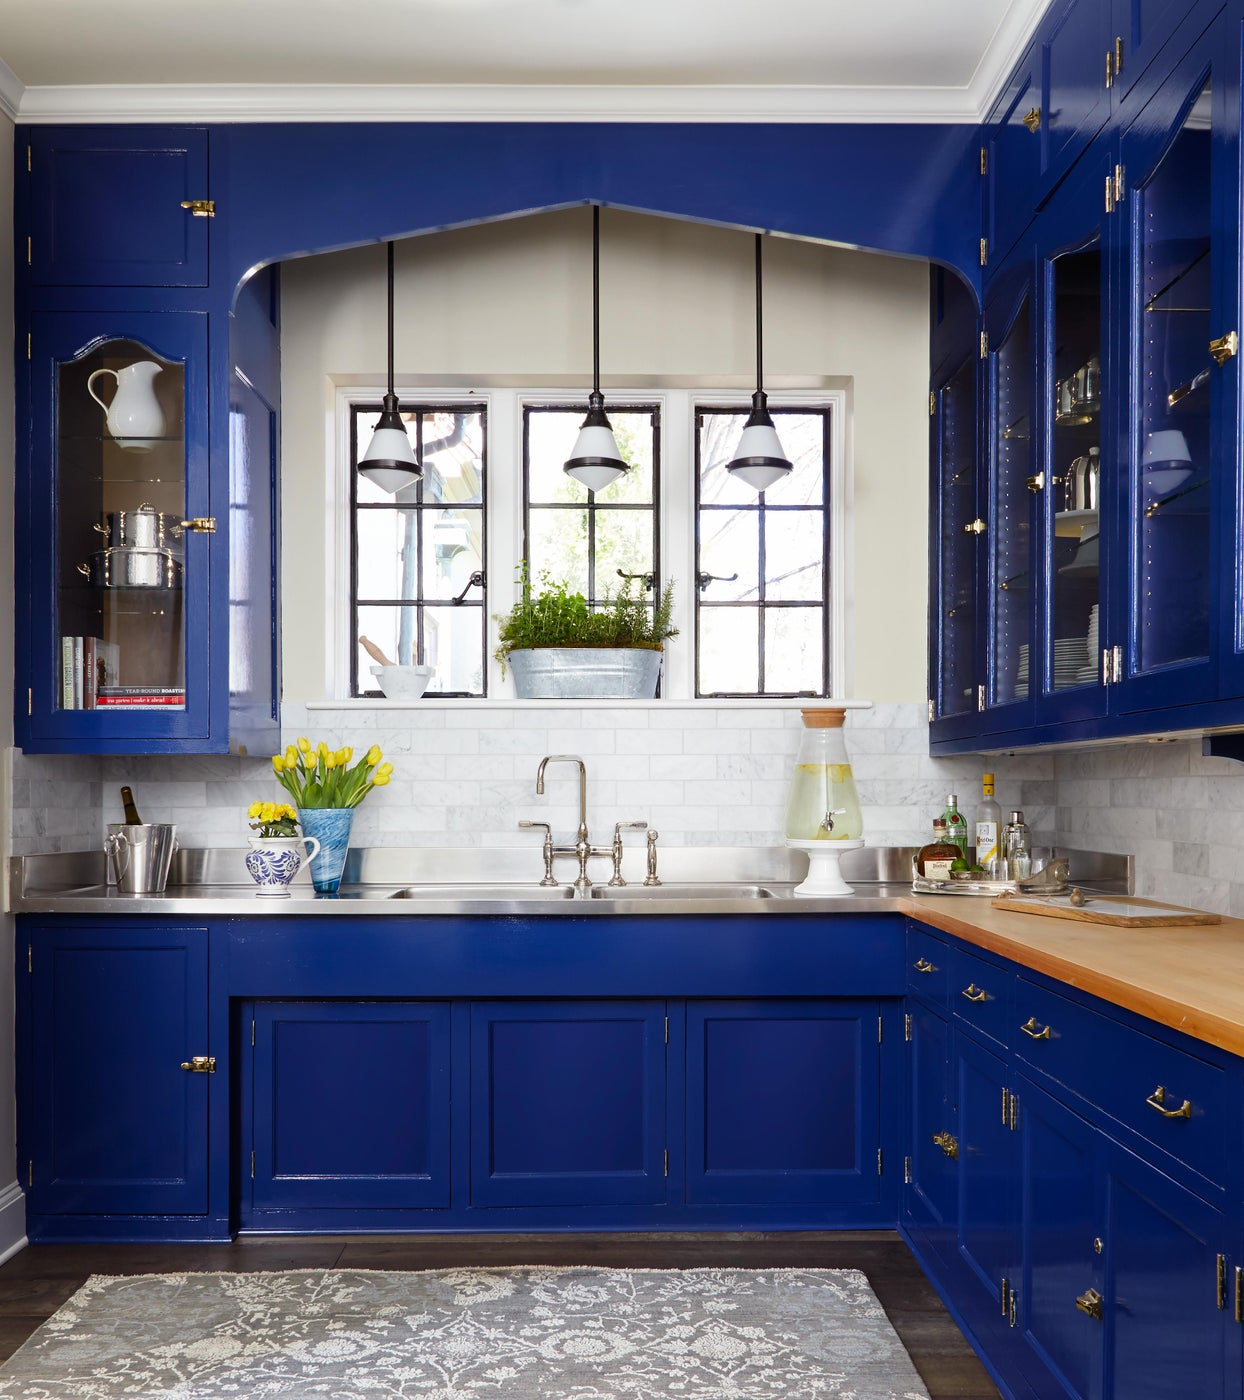 Butler's Pantry for Lake Forest Showhouse & Gardens